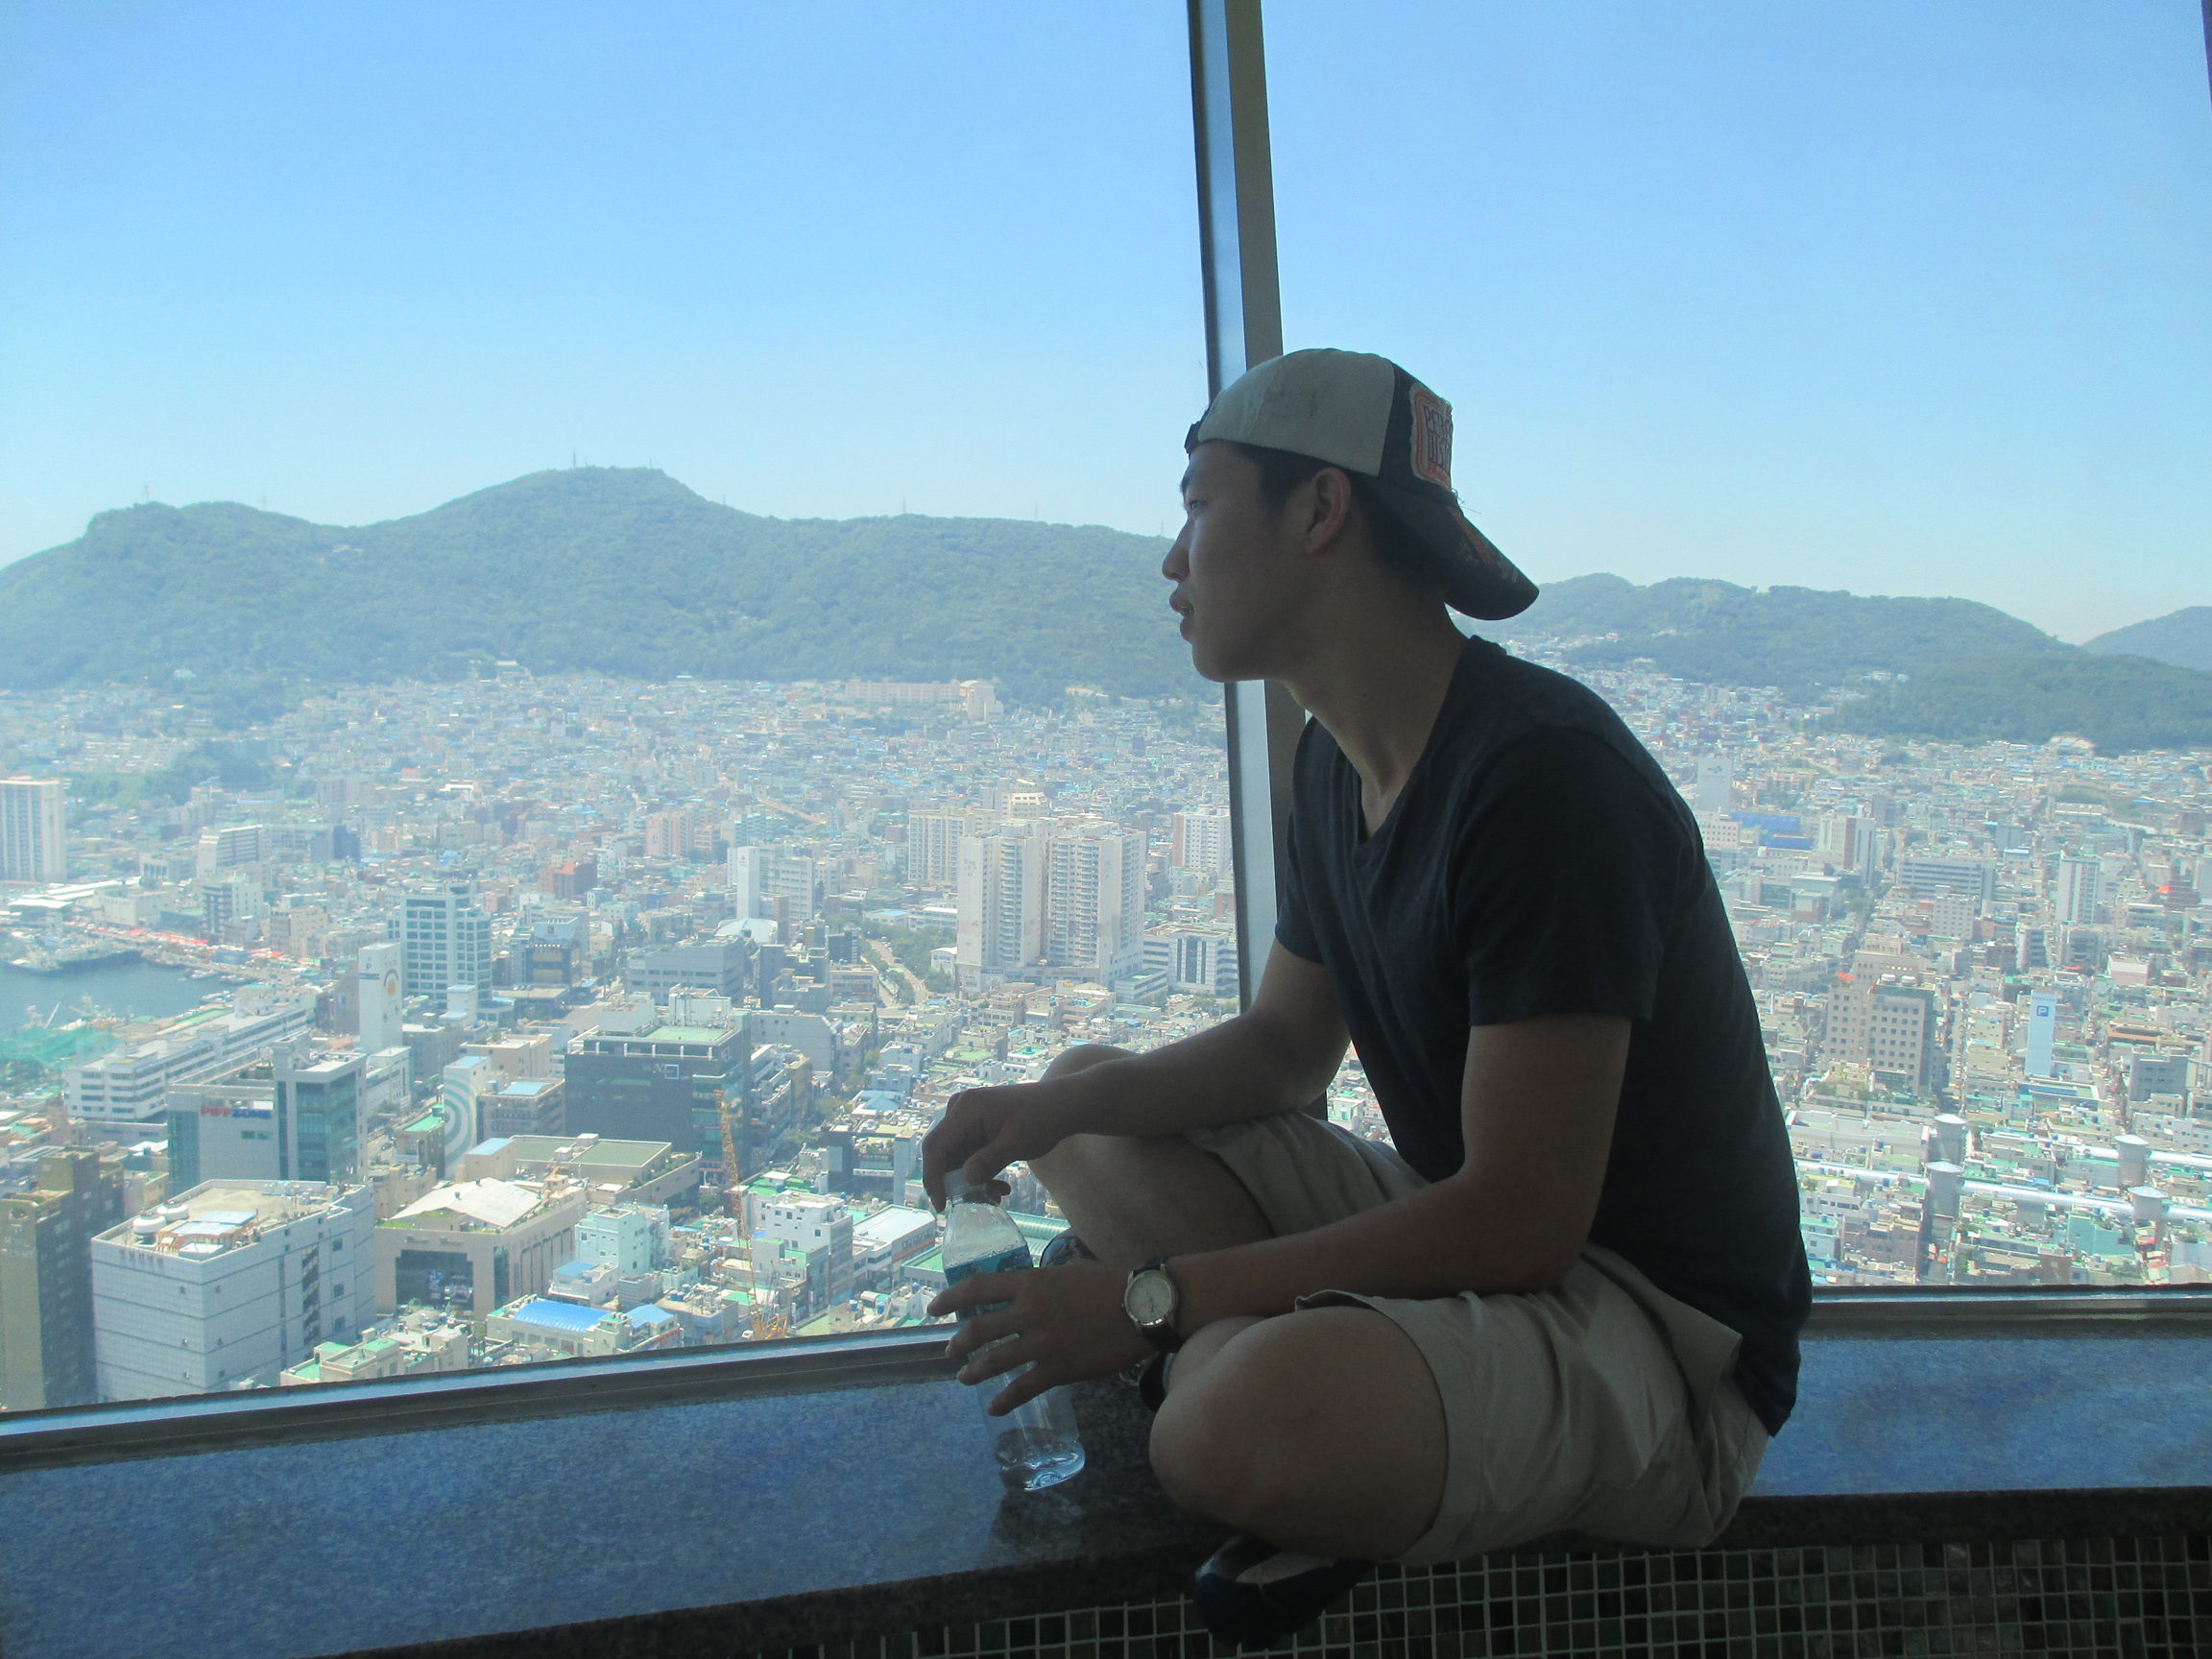 Jay gaping in awe of Busan's beauty